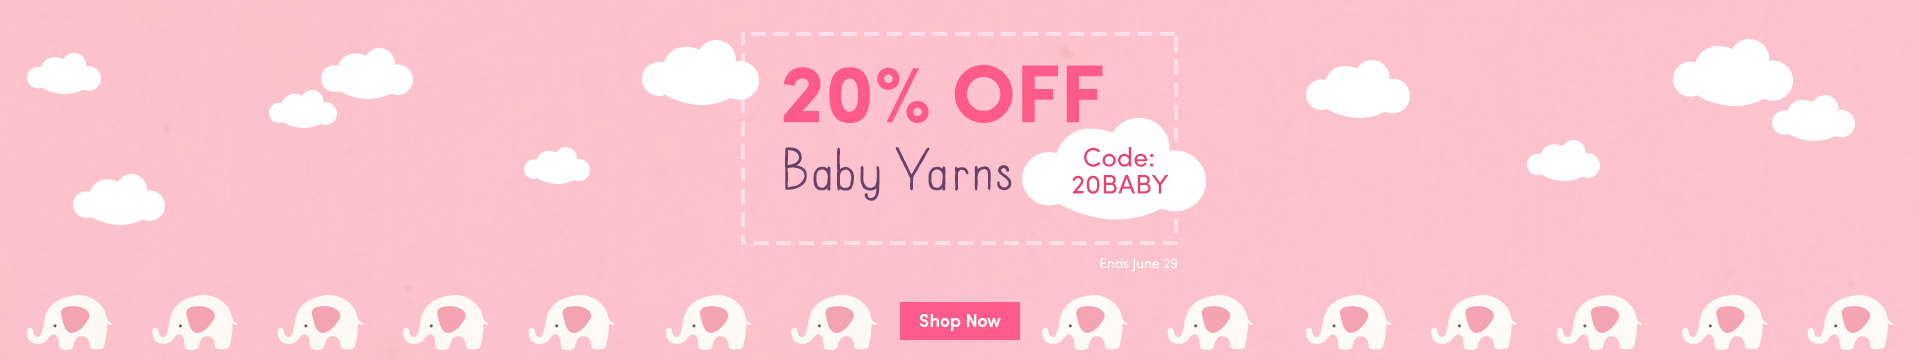 LC Marketing NA - 20% off Baby Yarns